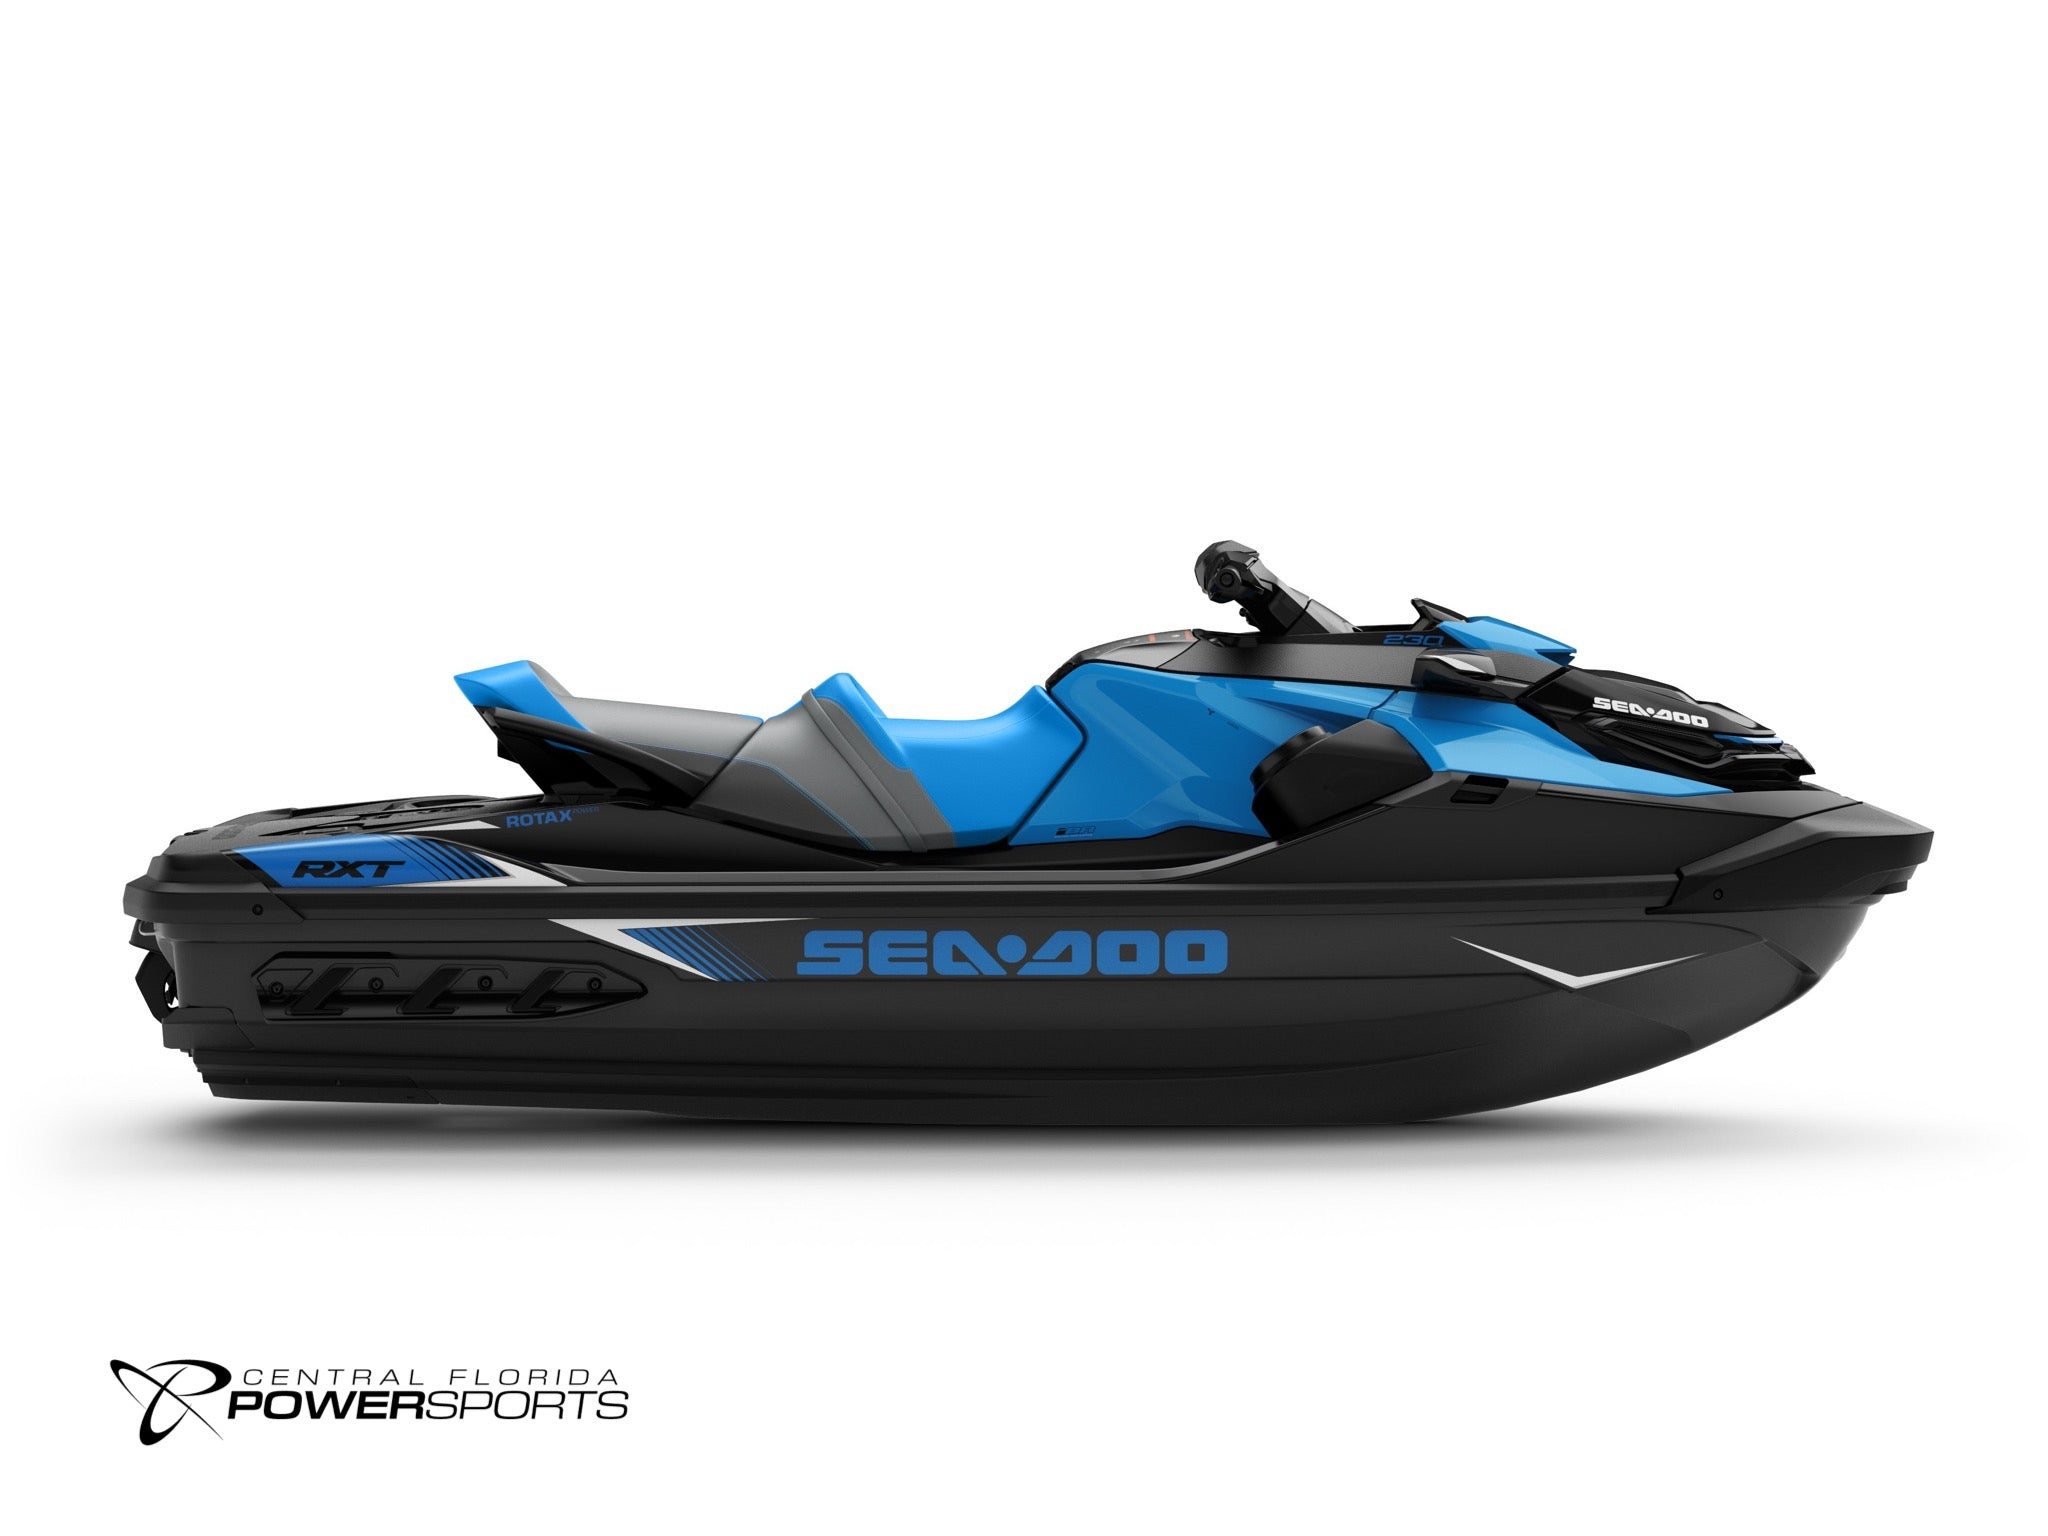 Seadoo Prices >> Lowest Prices on 2018 Sea-Doo RXT-260 Racing PWC For Sale ...